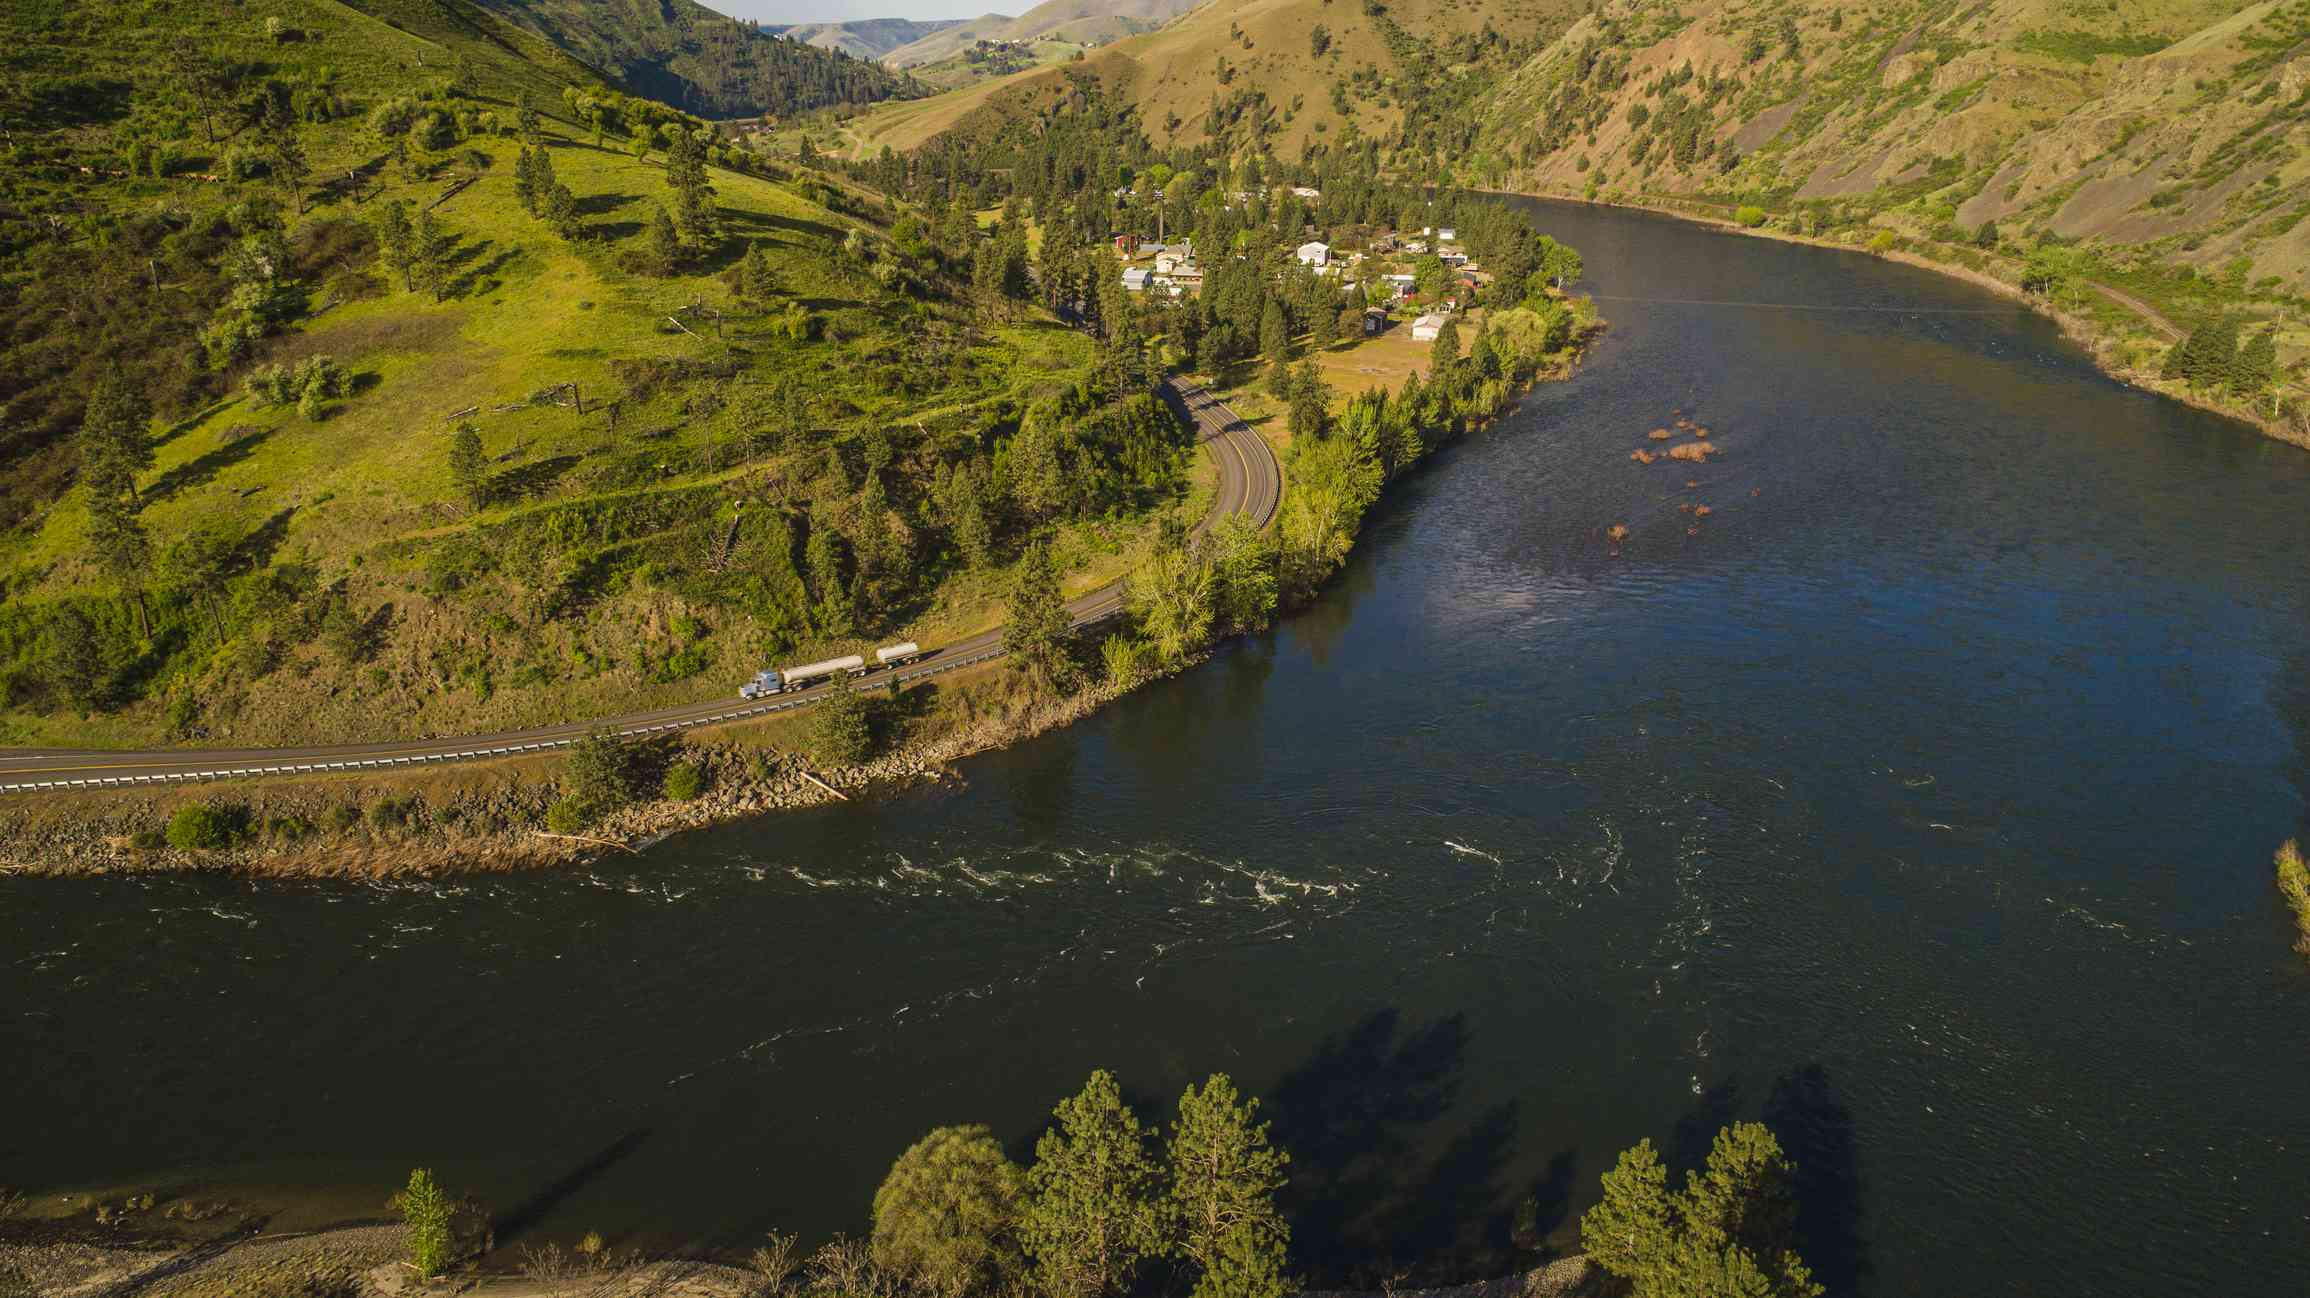 Highway 12 along the Clearwater River near Lonore, Idaho, USA